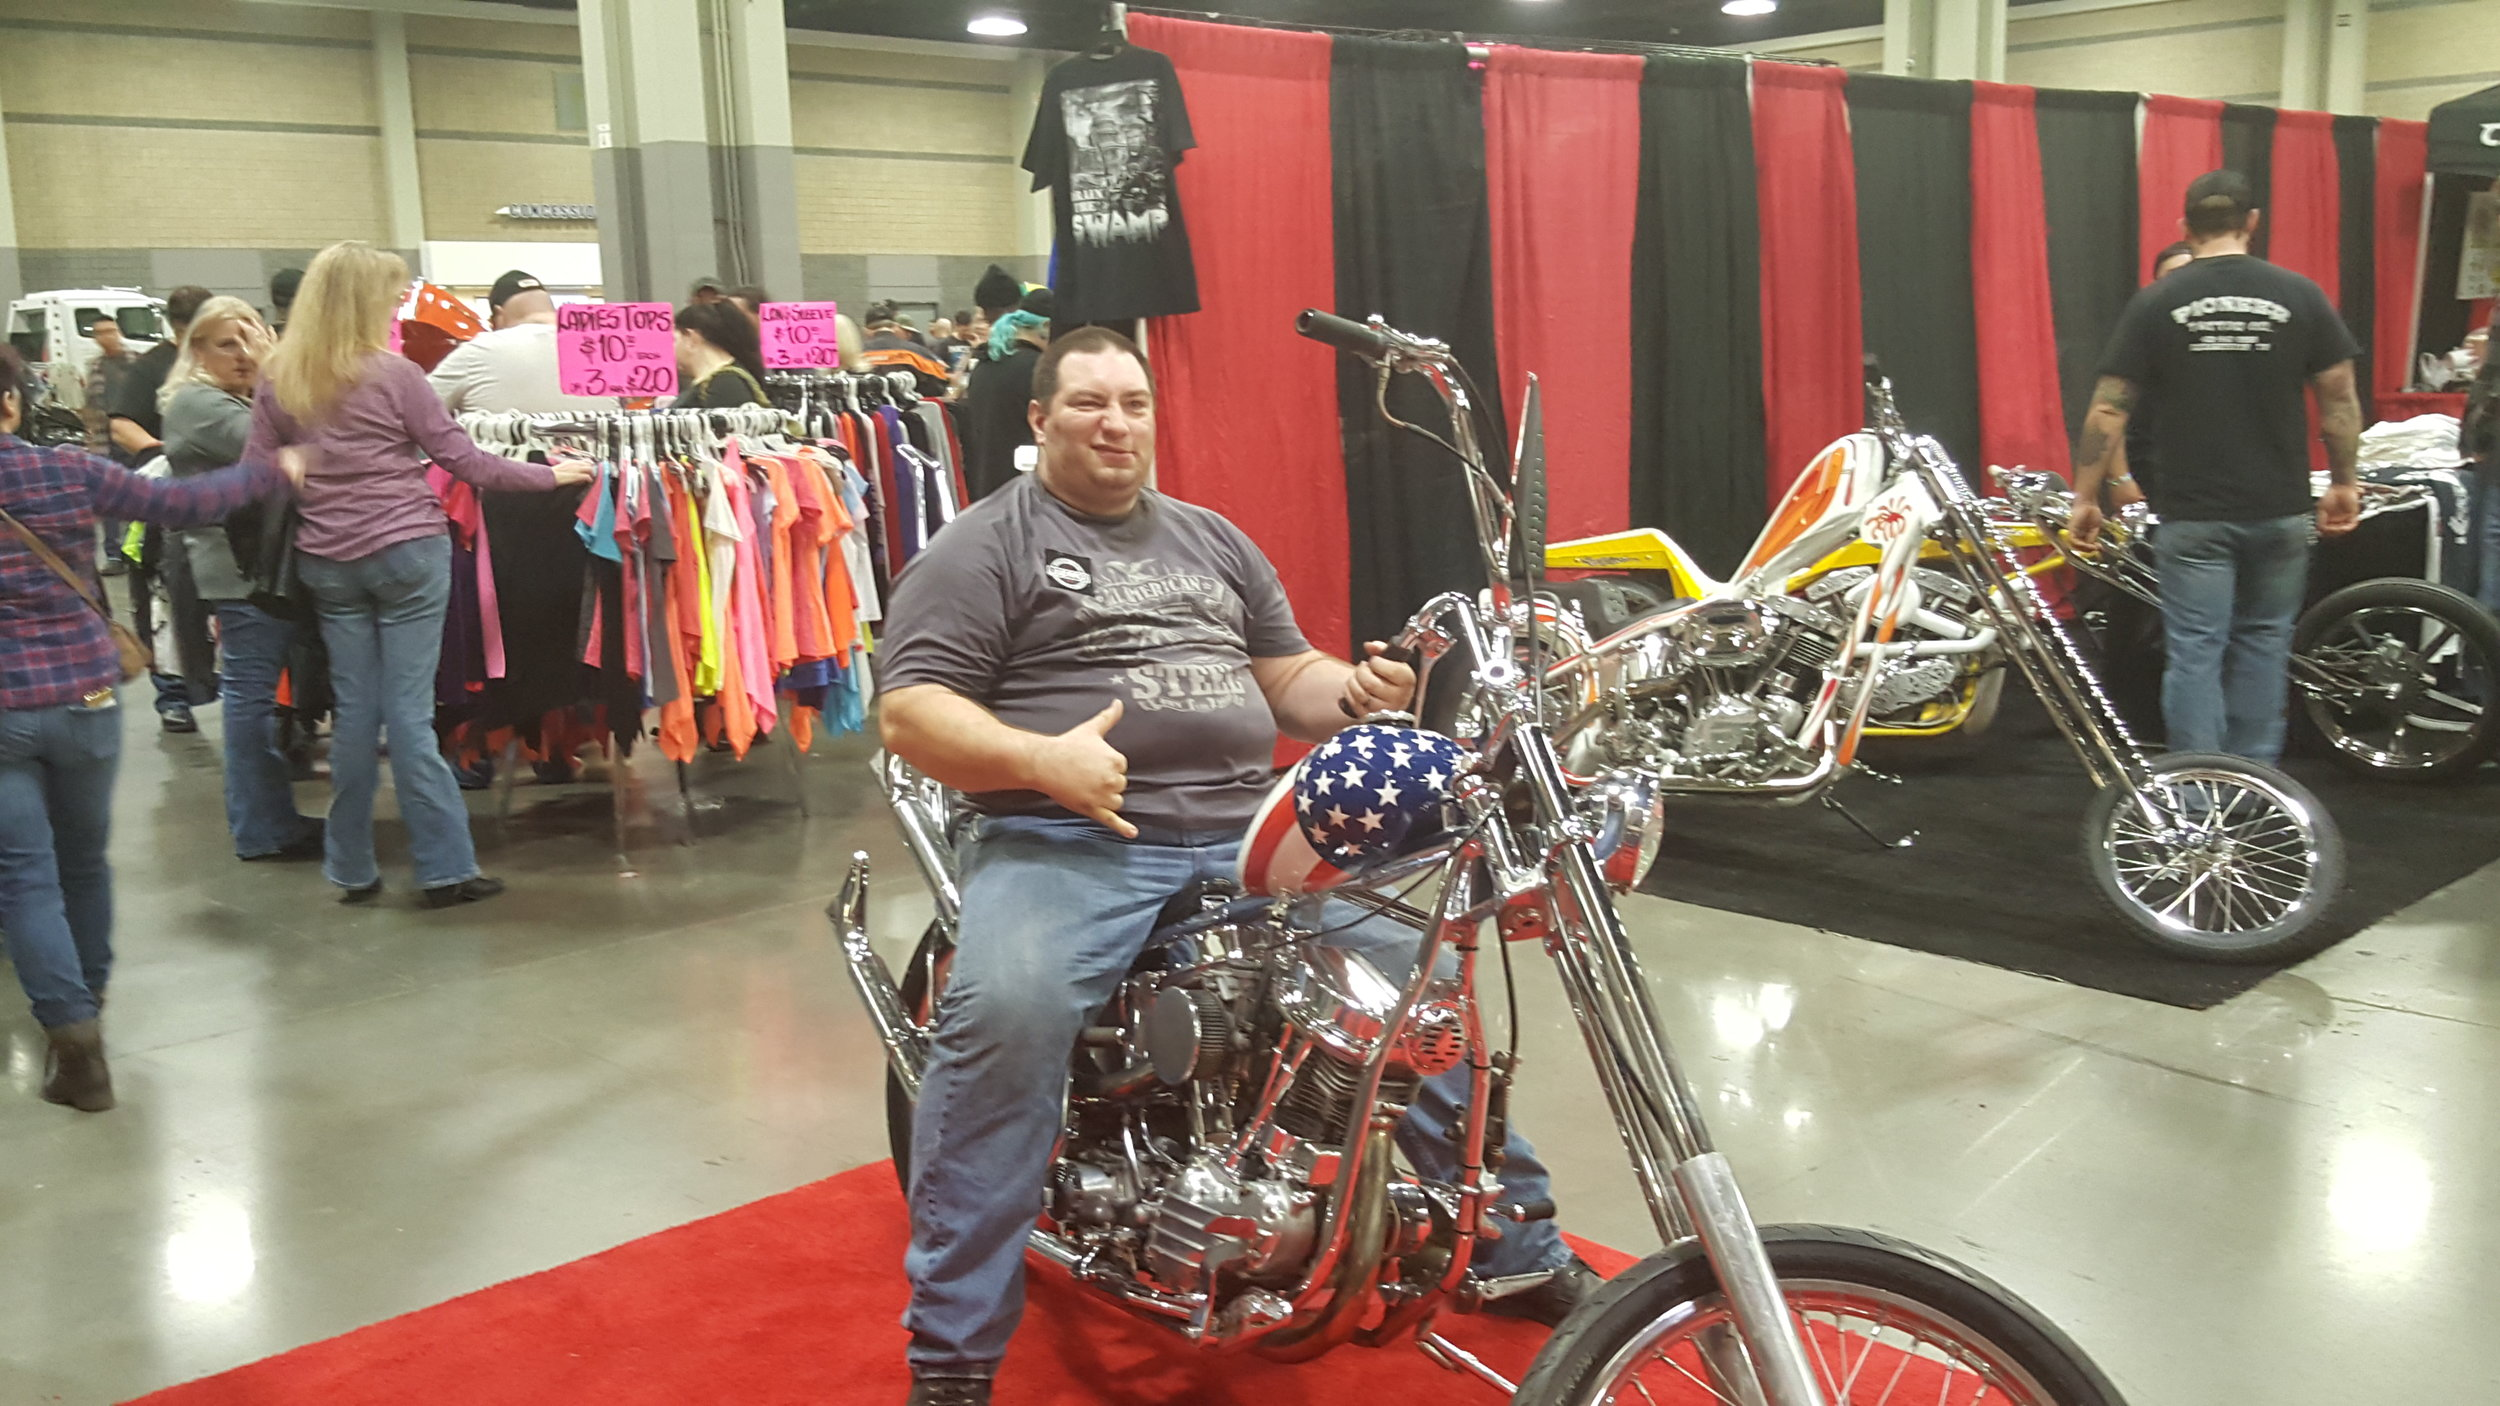 EasyRider Chopper with Mike testing it out.